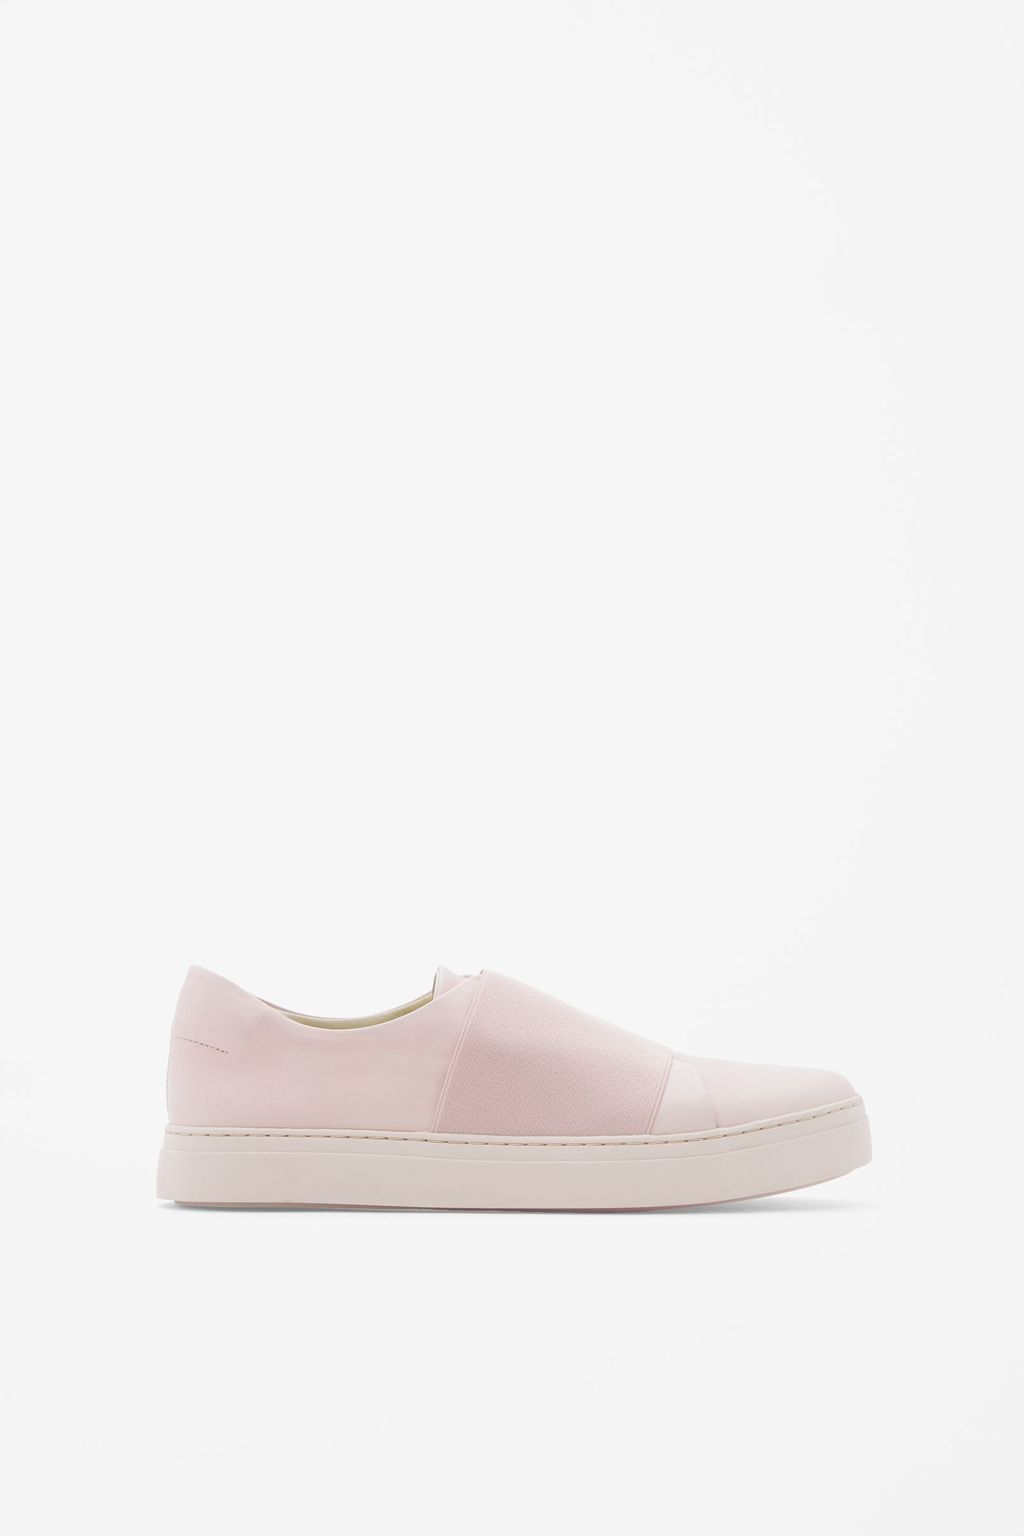 Wrap Over Leather Sneaker - predominant colour: blush; occasions: casual, holiday; material: leather; heel height: flat; toe: round toe; style: trainers; finish: plain; pattern: plain; season: s/s 2016